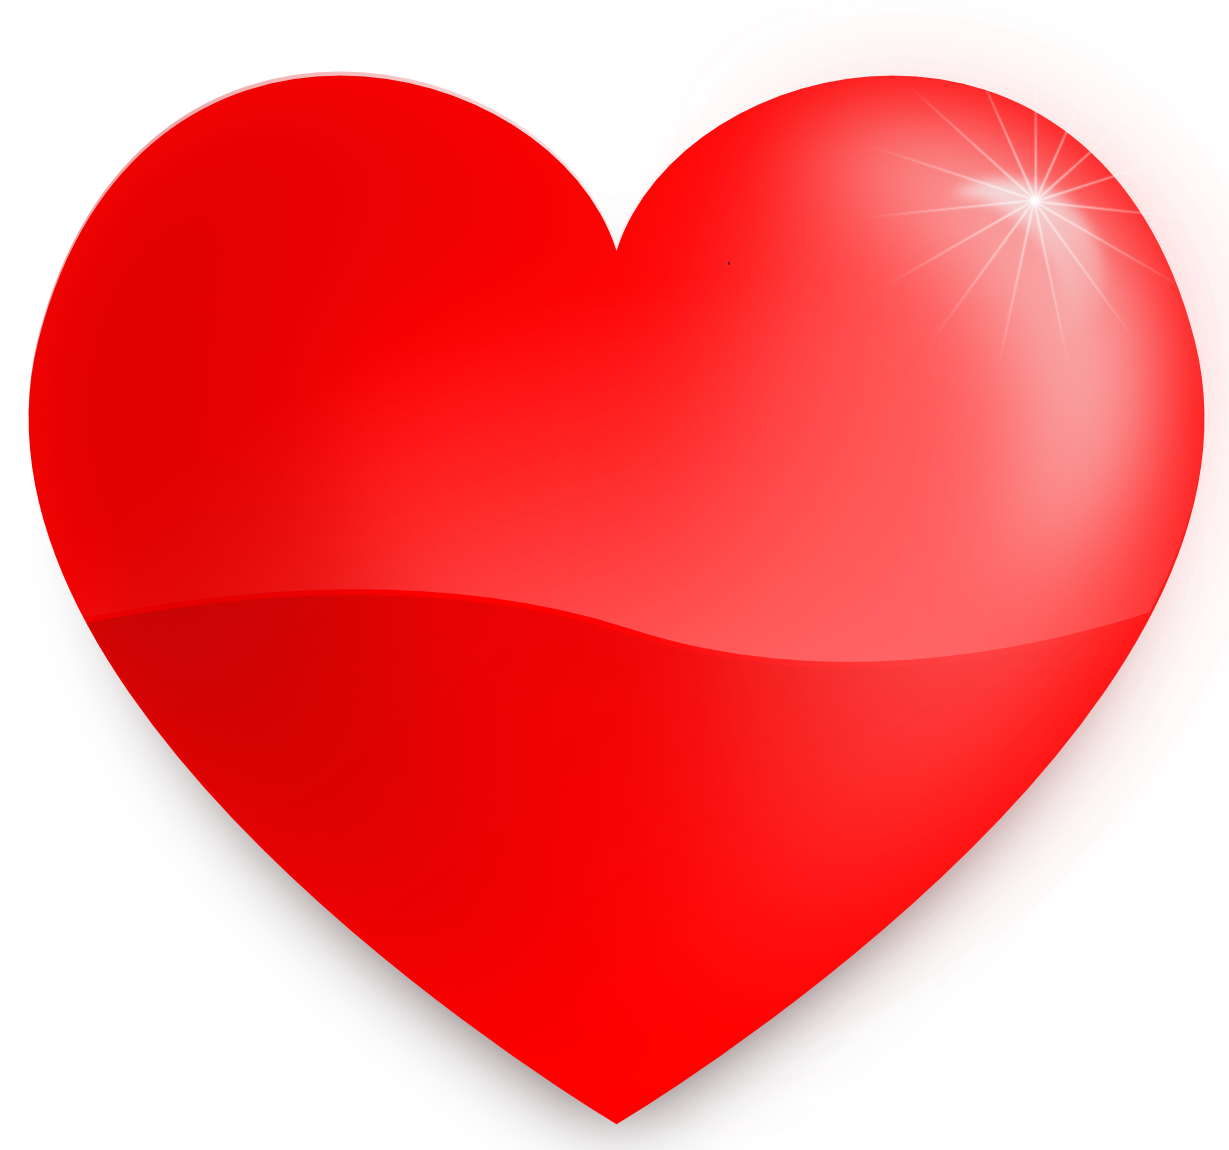 1229x1150 Valentine's Day Clipart Small Heart